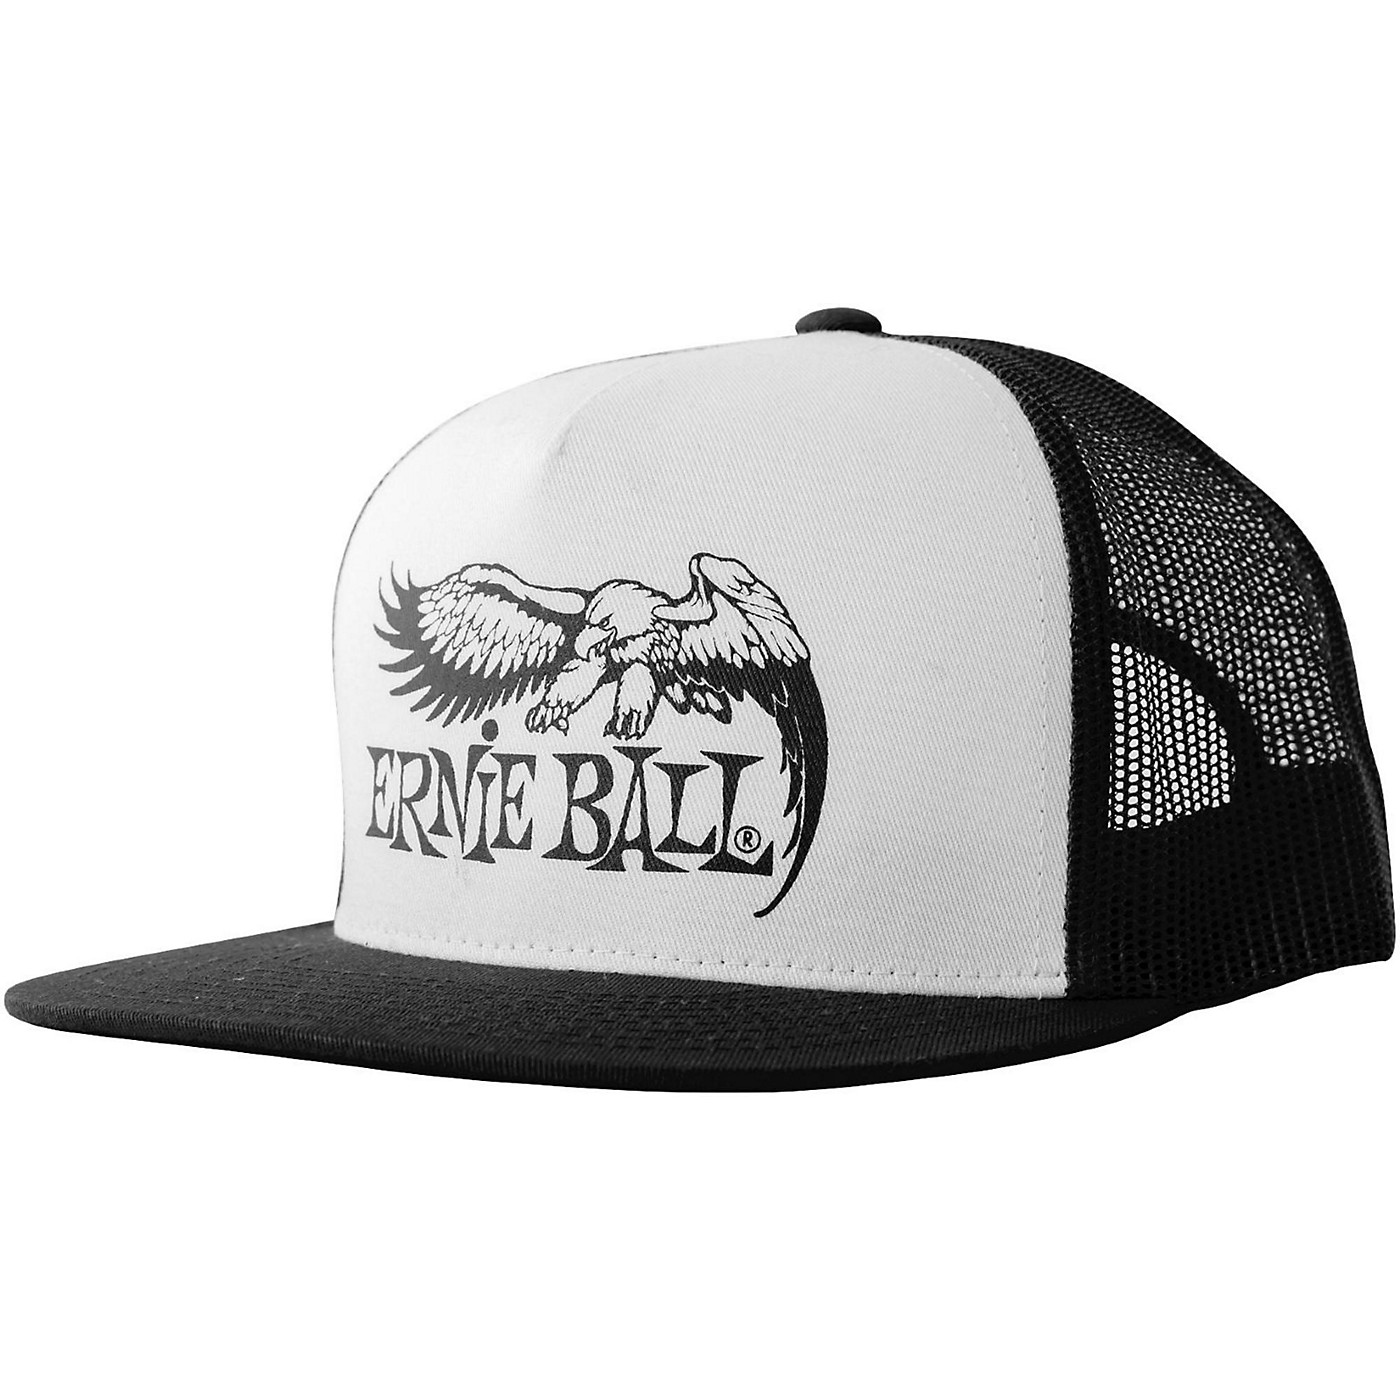 Ernie Ball Black & White Trucker Cap w/ Ernie Ball Eagle thumbnail